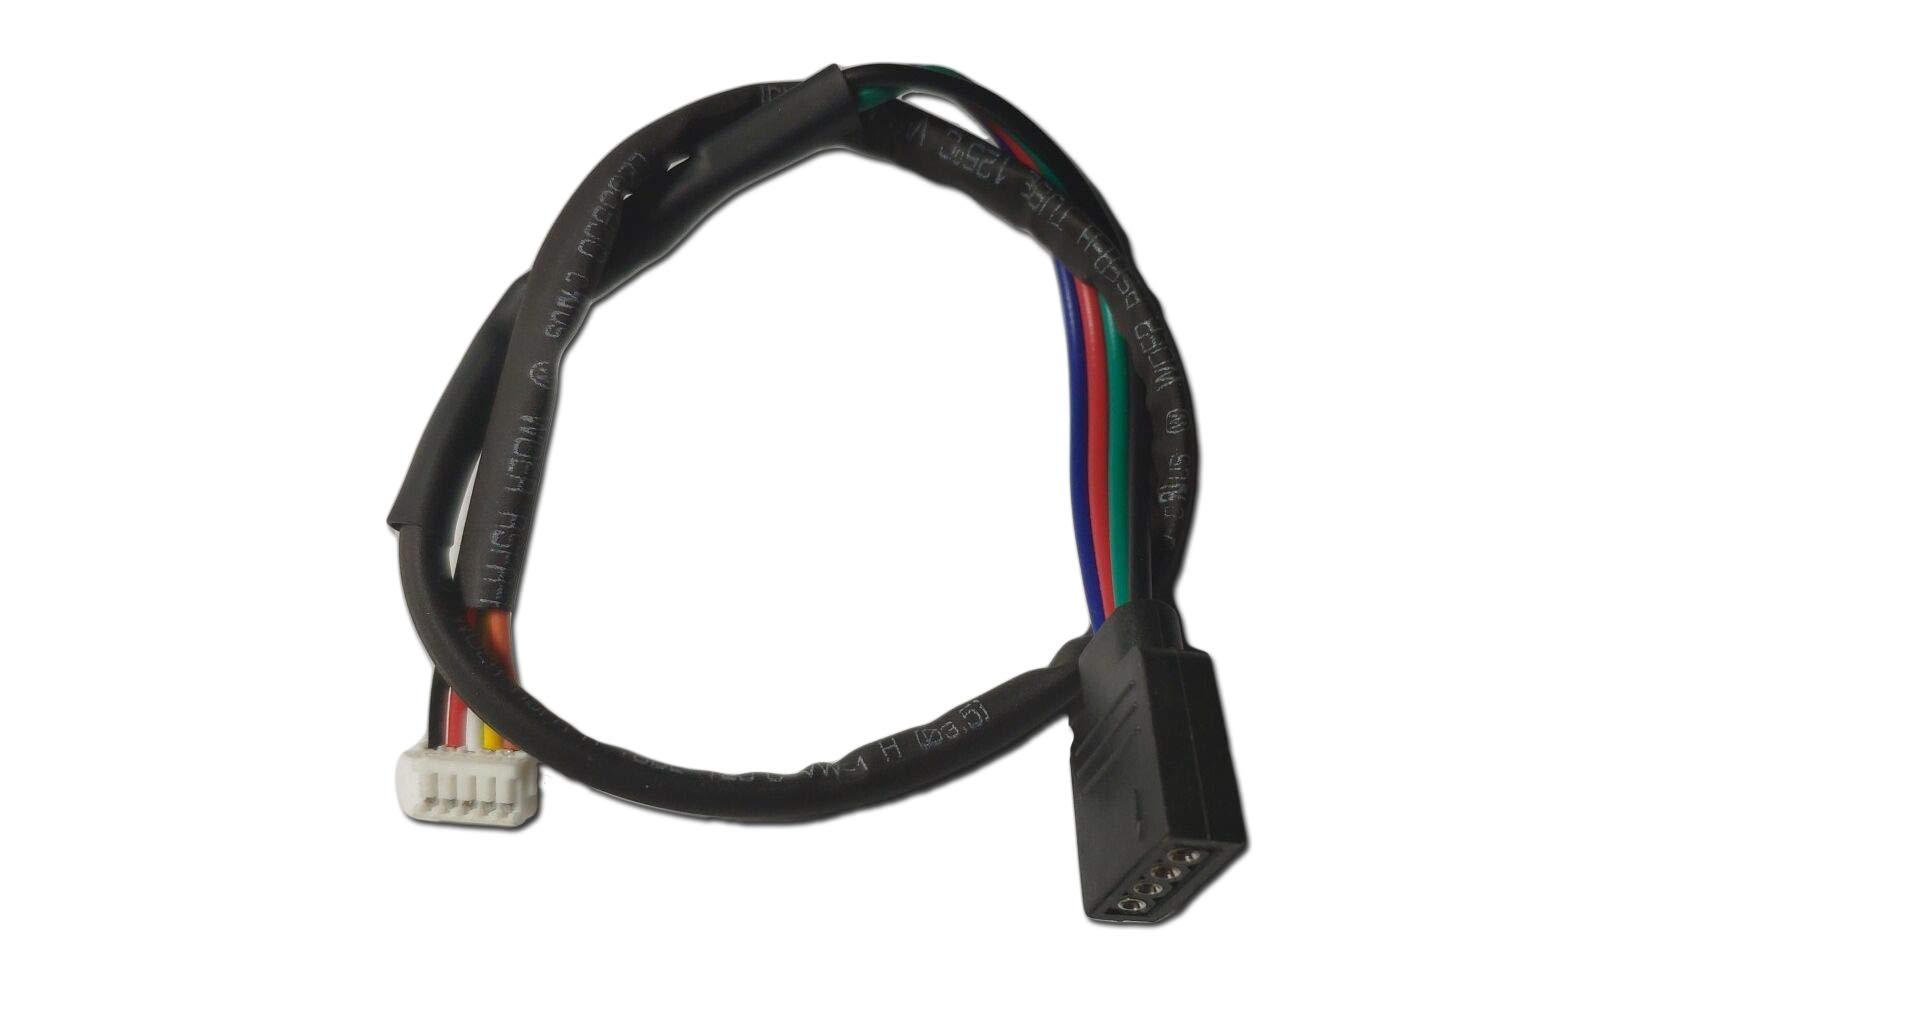 AMD AM4 RGB Cable for AMD Wraith Spire RGB LED Light Socket